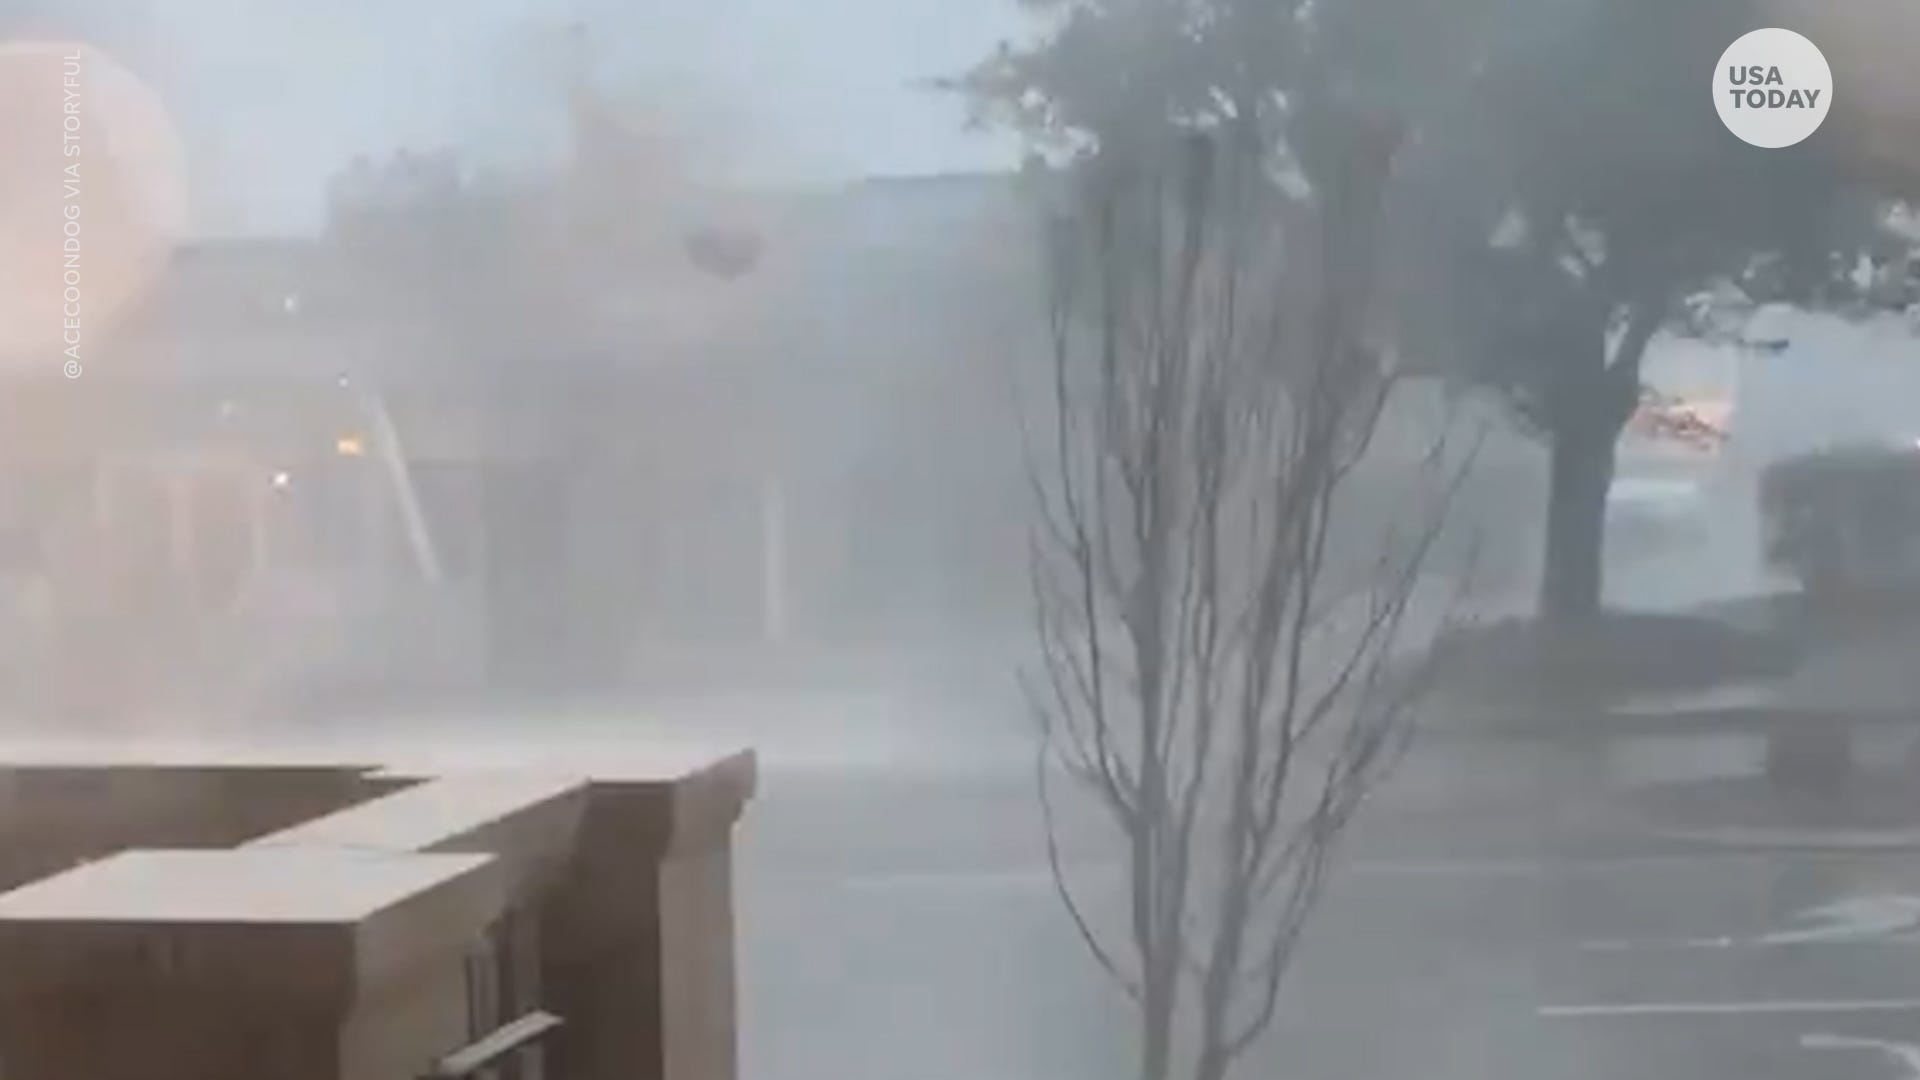 Heavy rain storms, strong winds, floods and tornado watches and warnings hit the Southeast